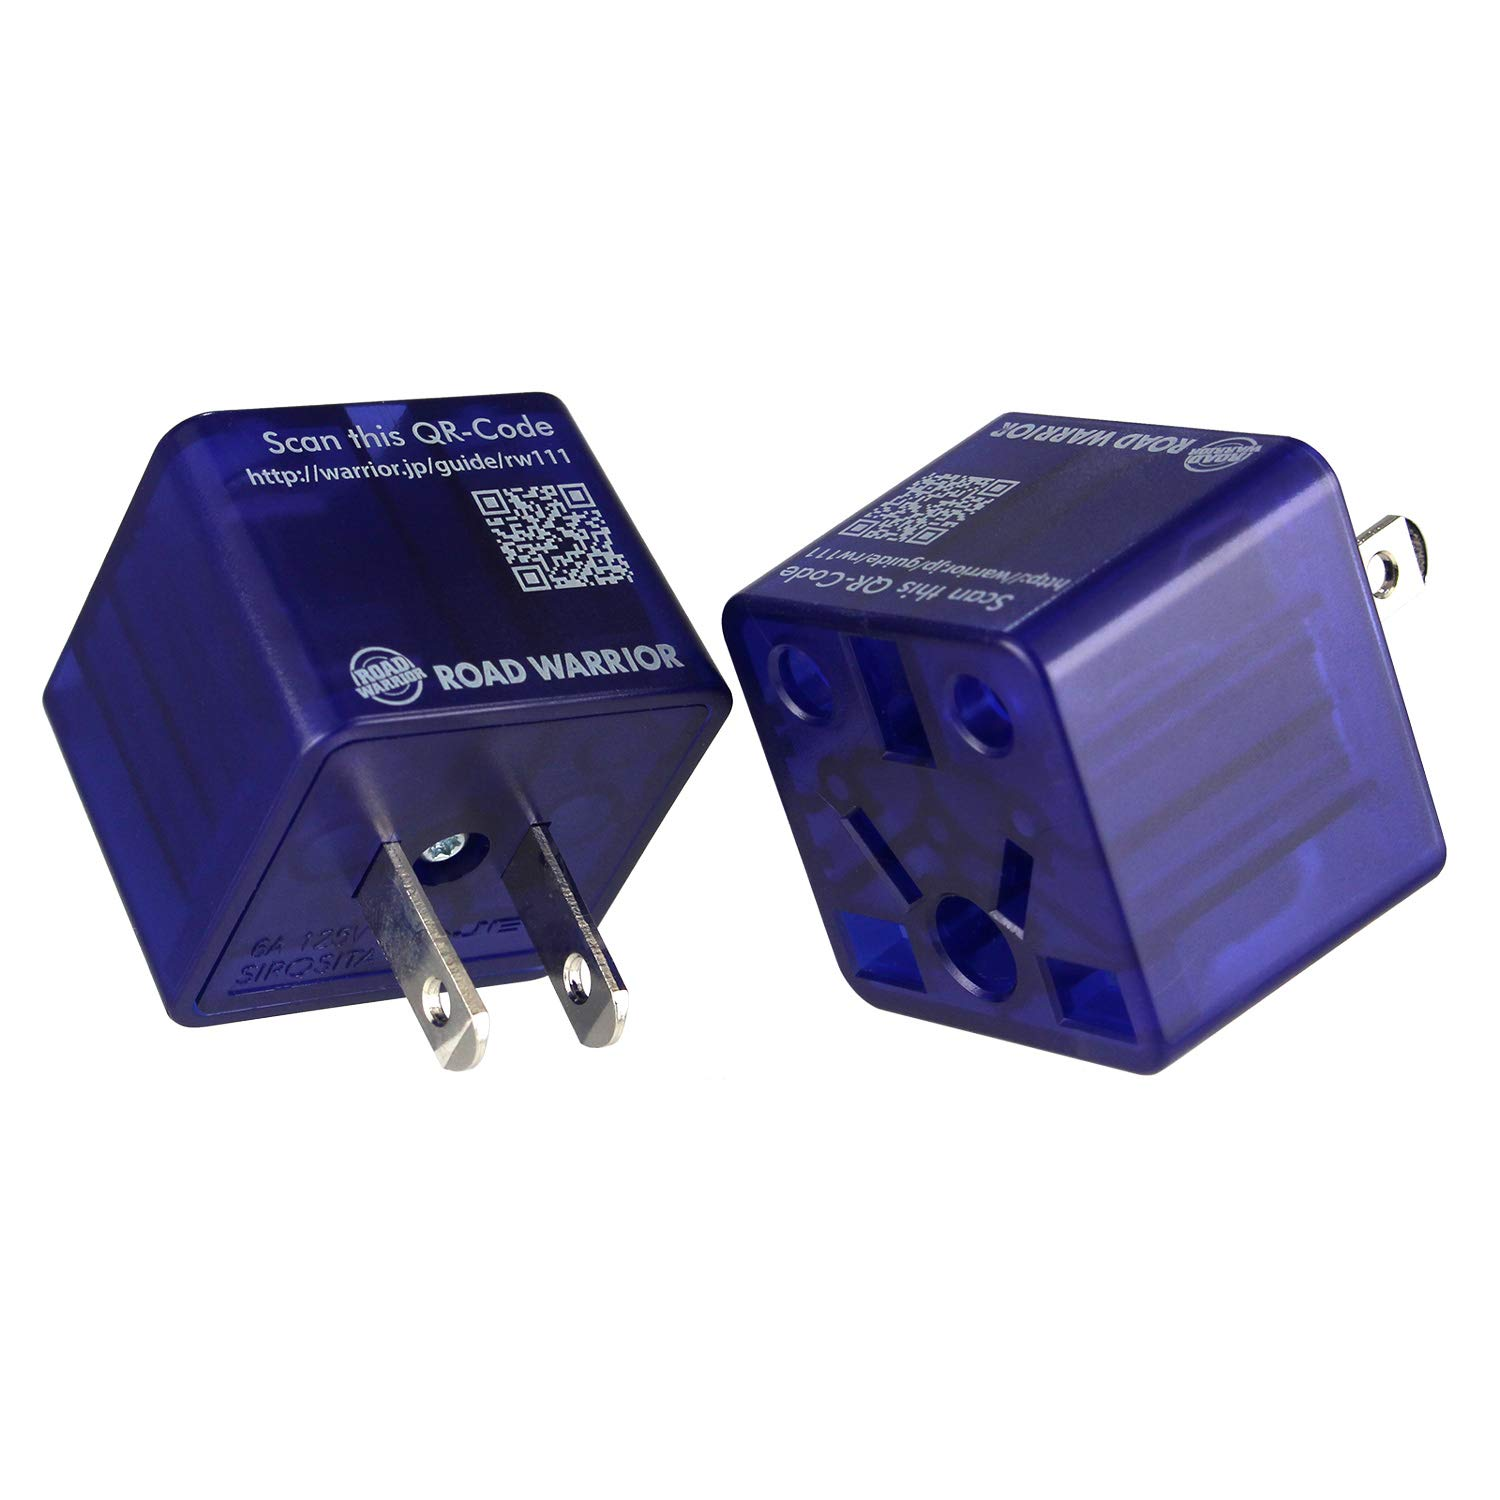 [2 Pack] ROAD WARRIOR US Travel Plug Adapter EU/UK/CN/AU/IN to USA (Type A) - RW111BL-US